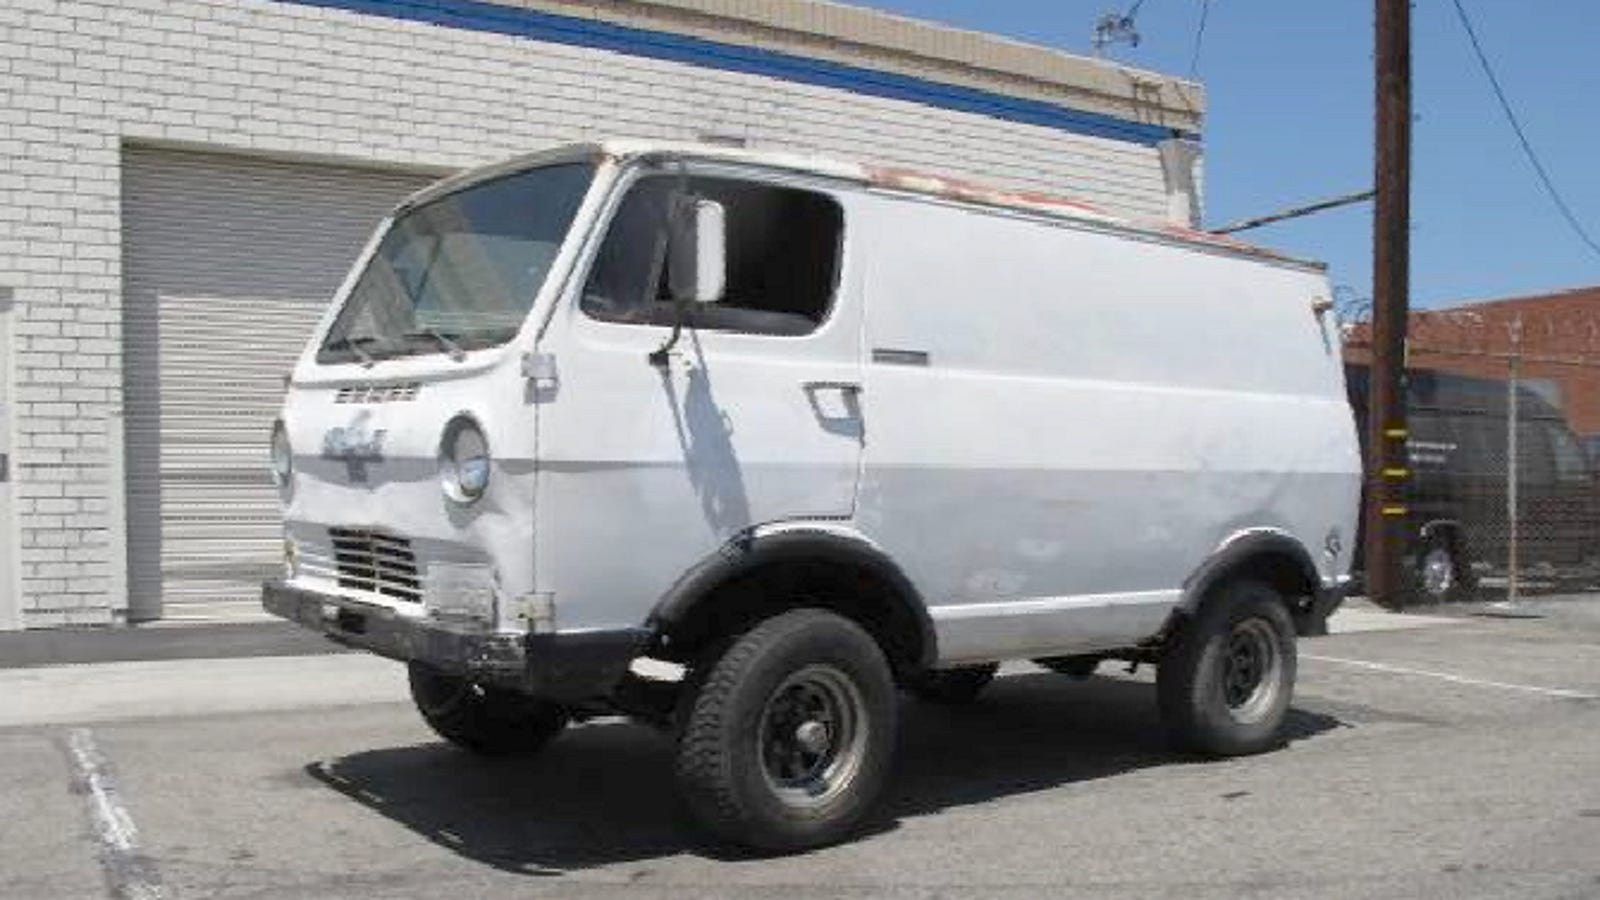 For $2,900, This 1965 Chevy Van Could Be Your 4x4 War Wagon